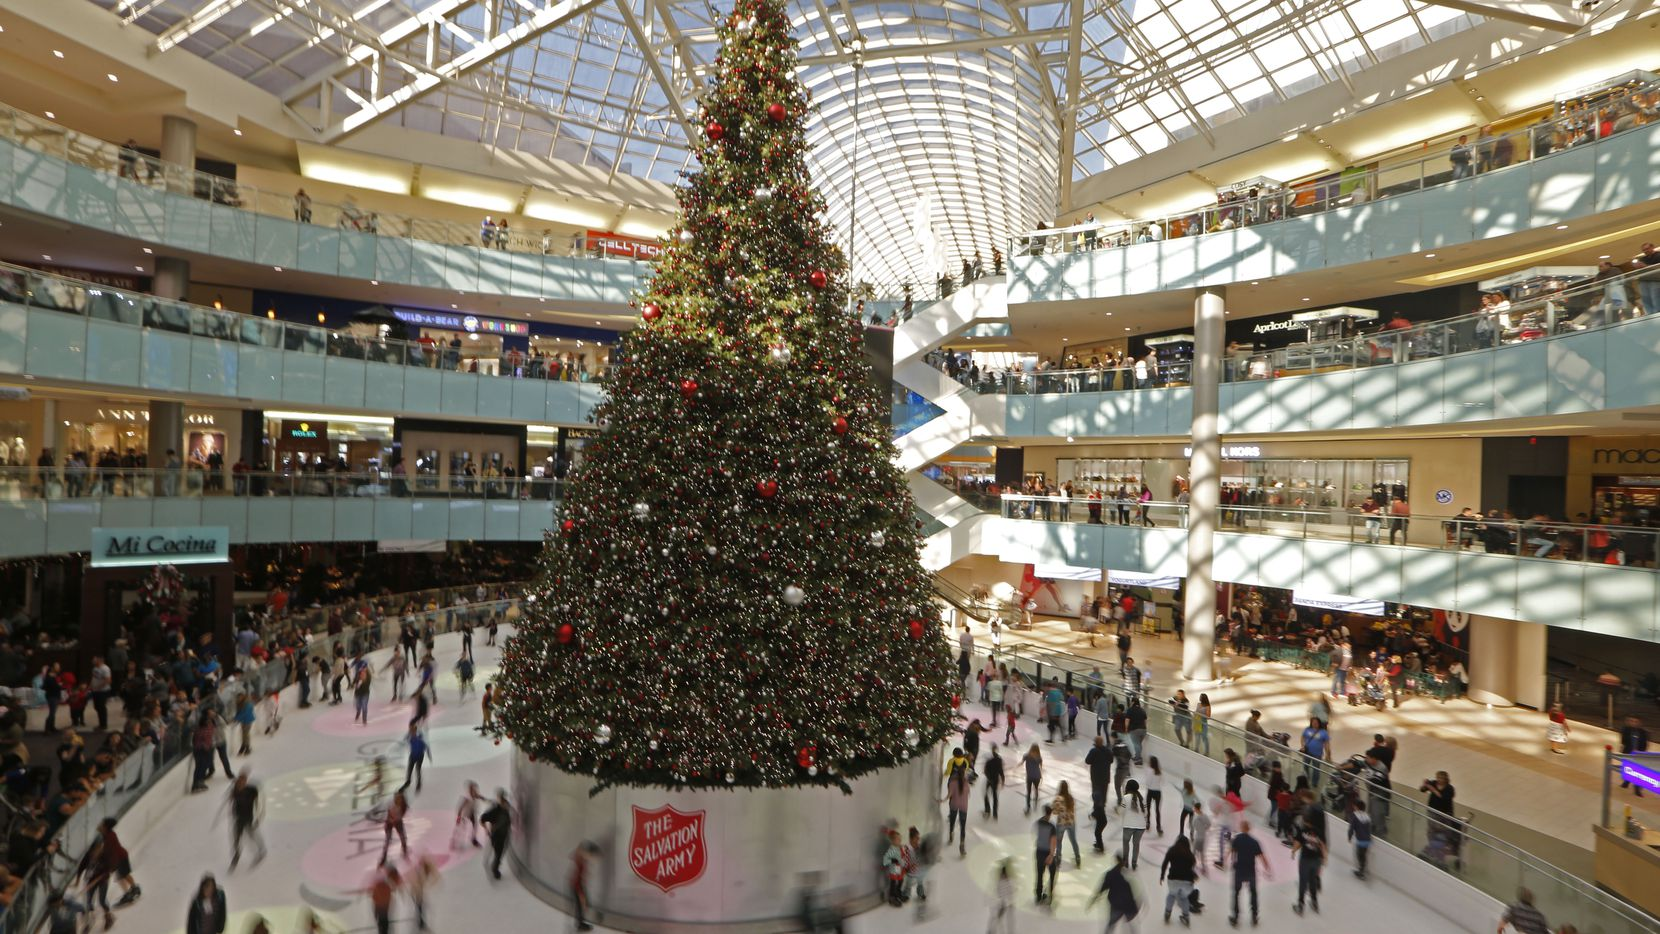 2020 Biggest Christmas Tree In Dallas Fort Worth The top places to see Christmas lights and other holiday displays